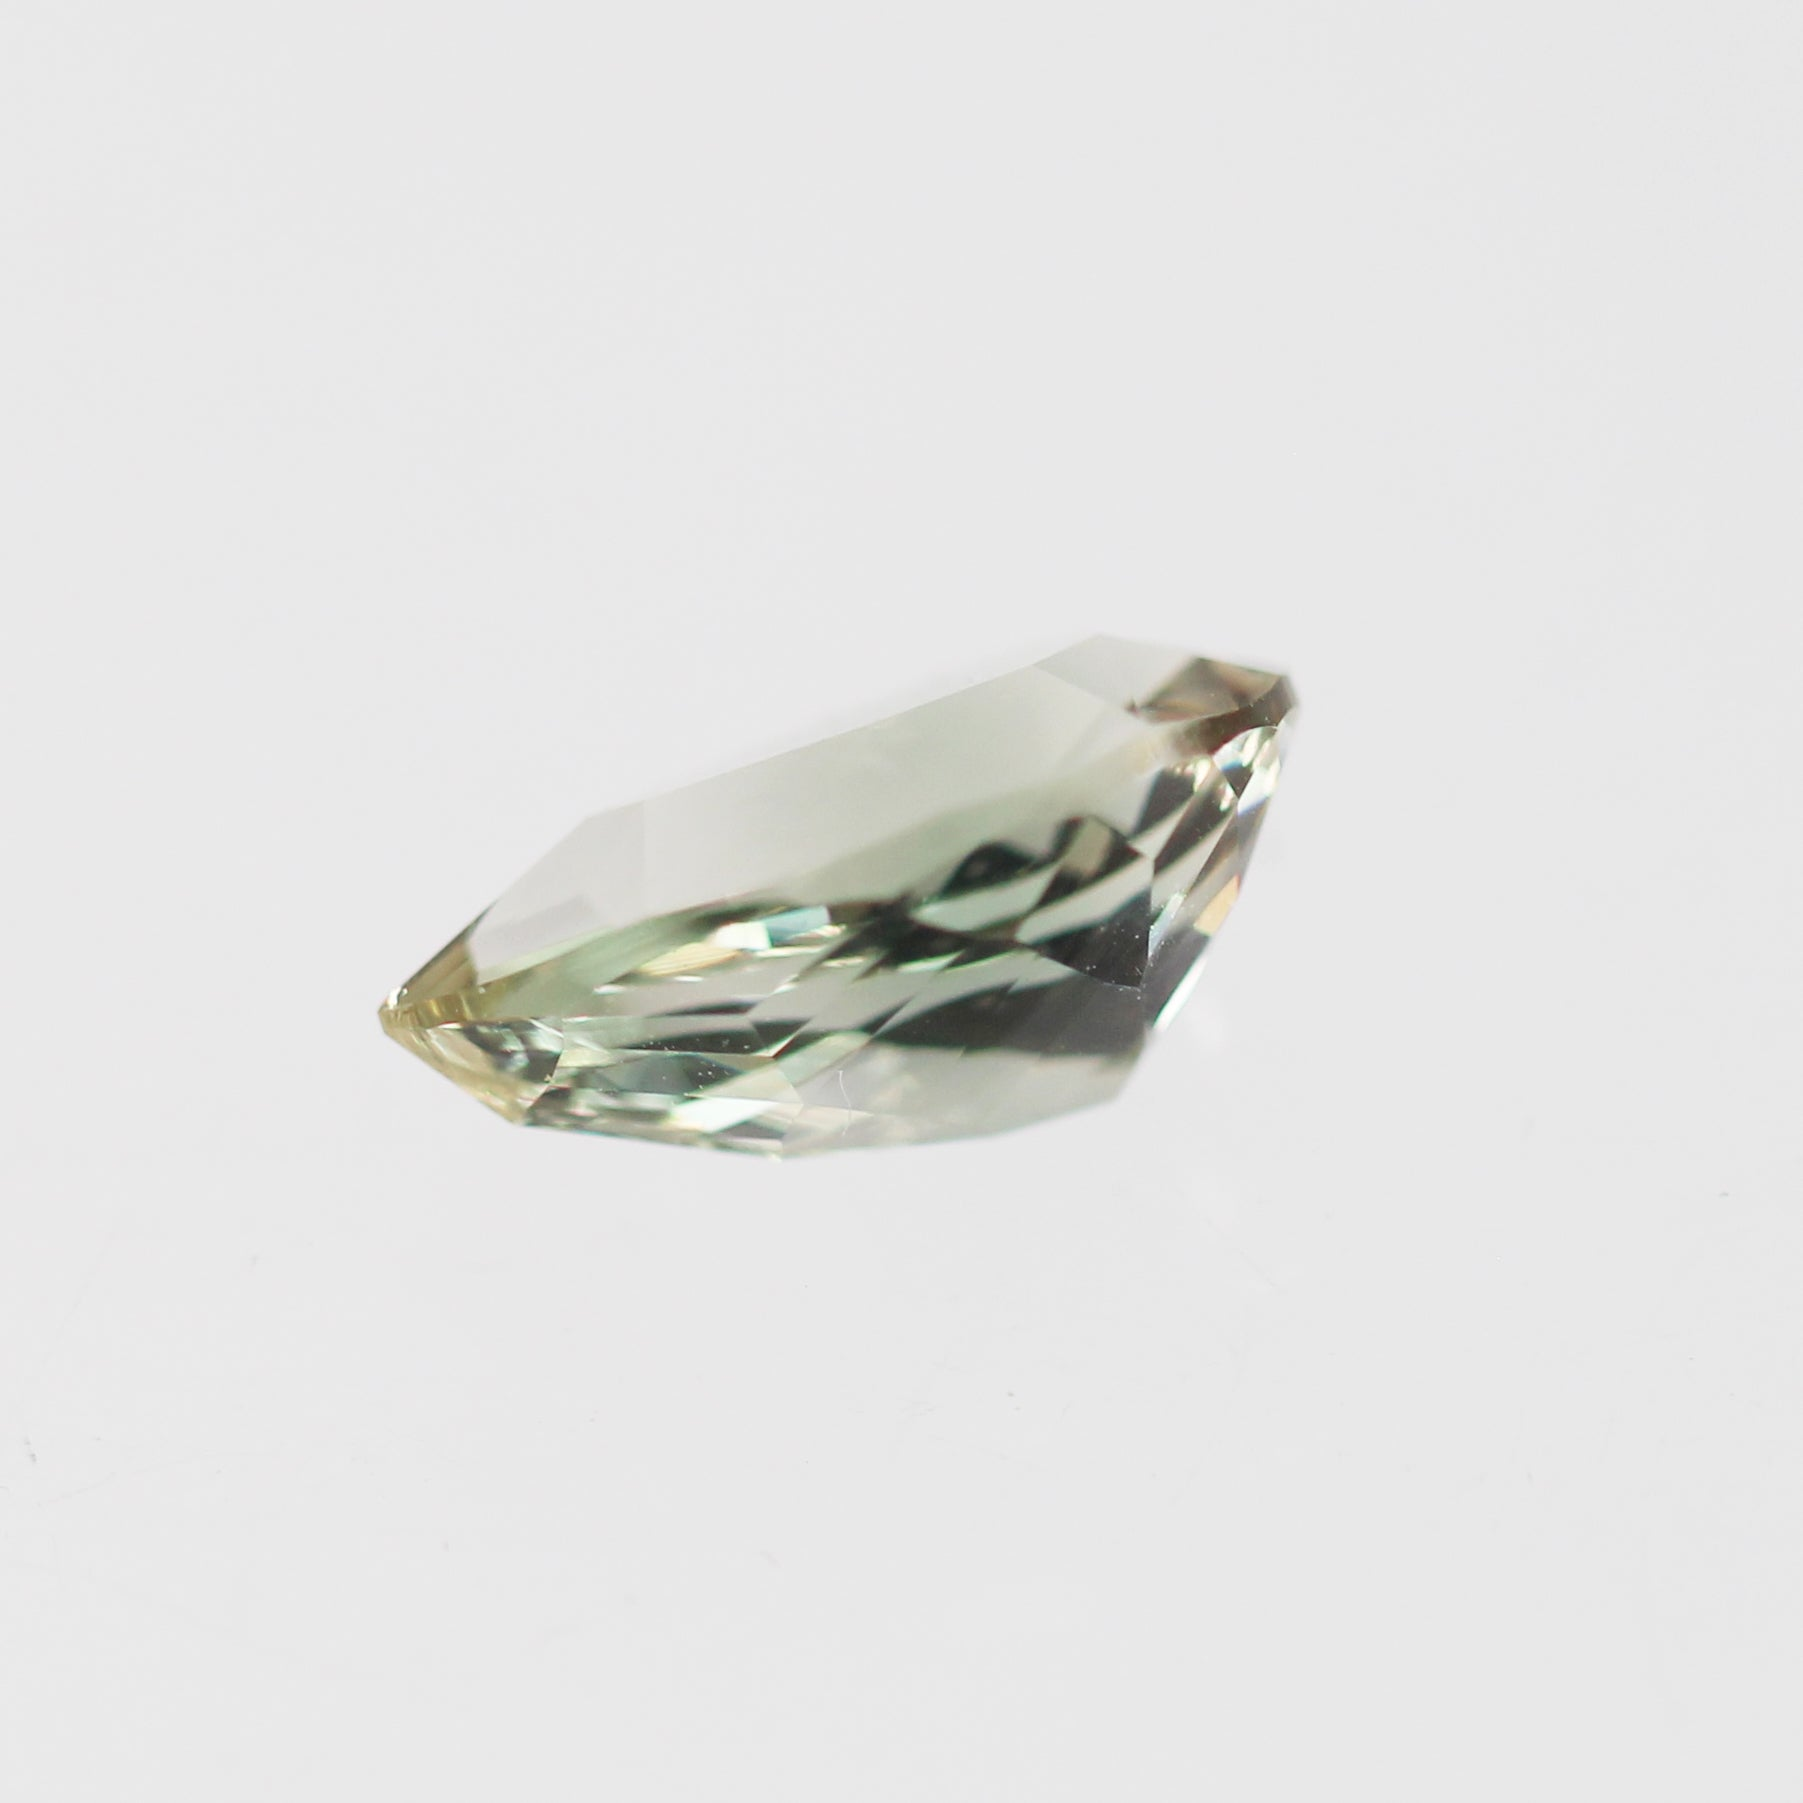 2.19 Carat Pear Sunstone - Inventory Code SUNPB219 - Celestial Diamonds ® by Midwinter Co.